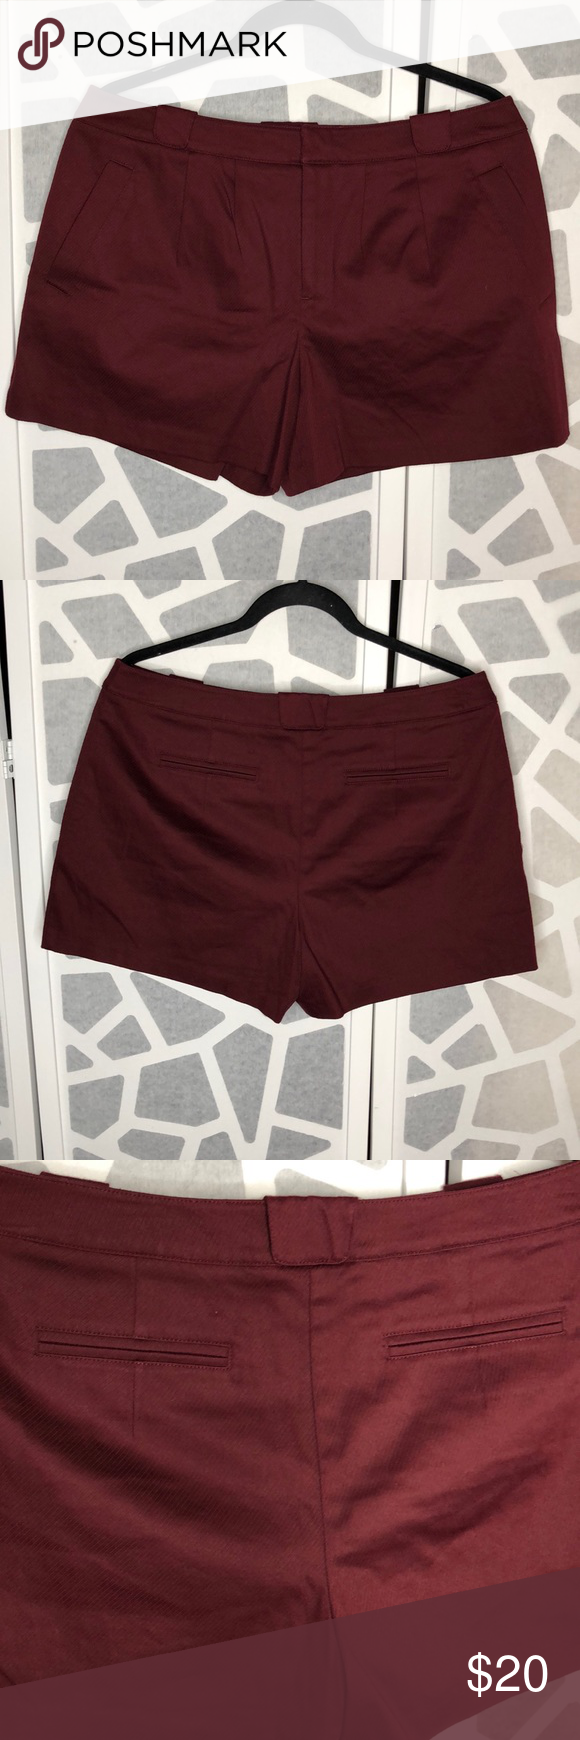 LC Lauren Conrad Shorts Teal Blue Green L Lined   Lc